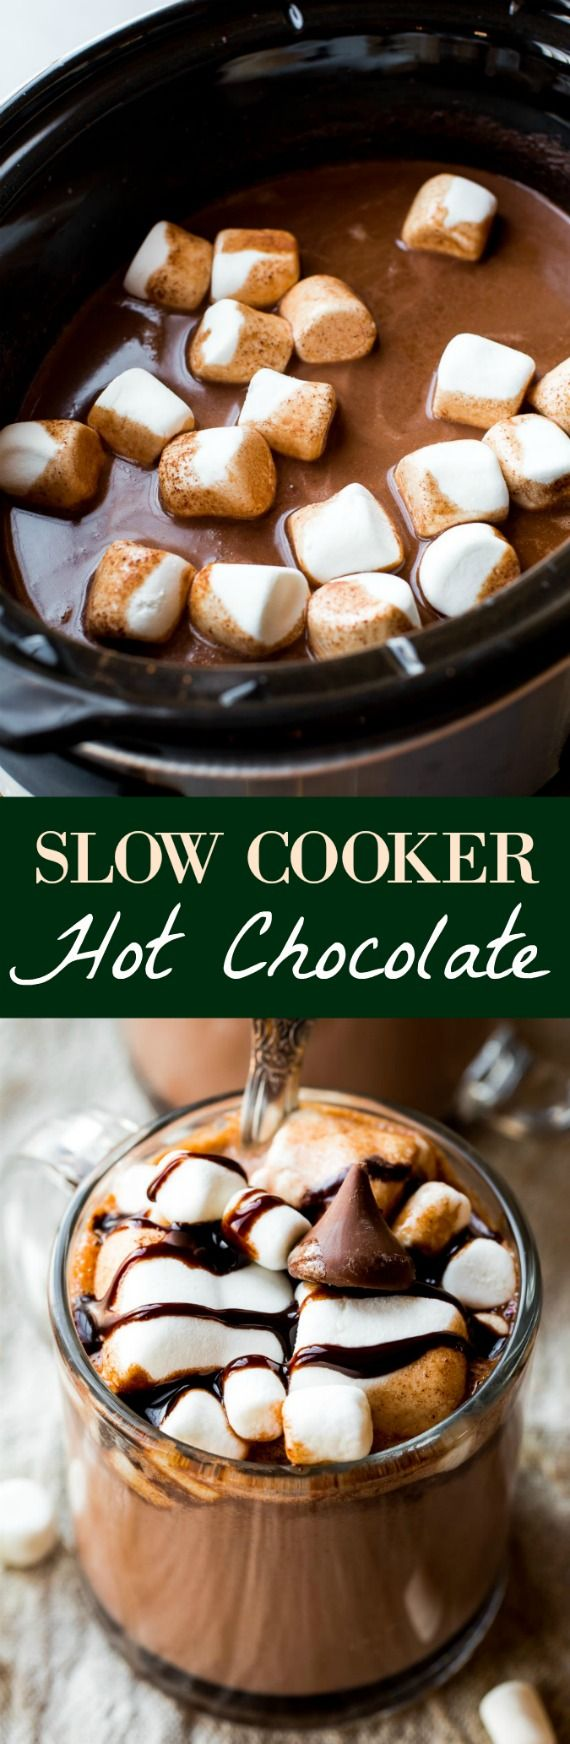 Decadent Slow Cooker Hot Chocolate | Recipe